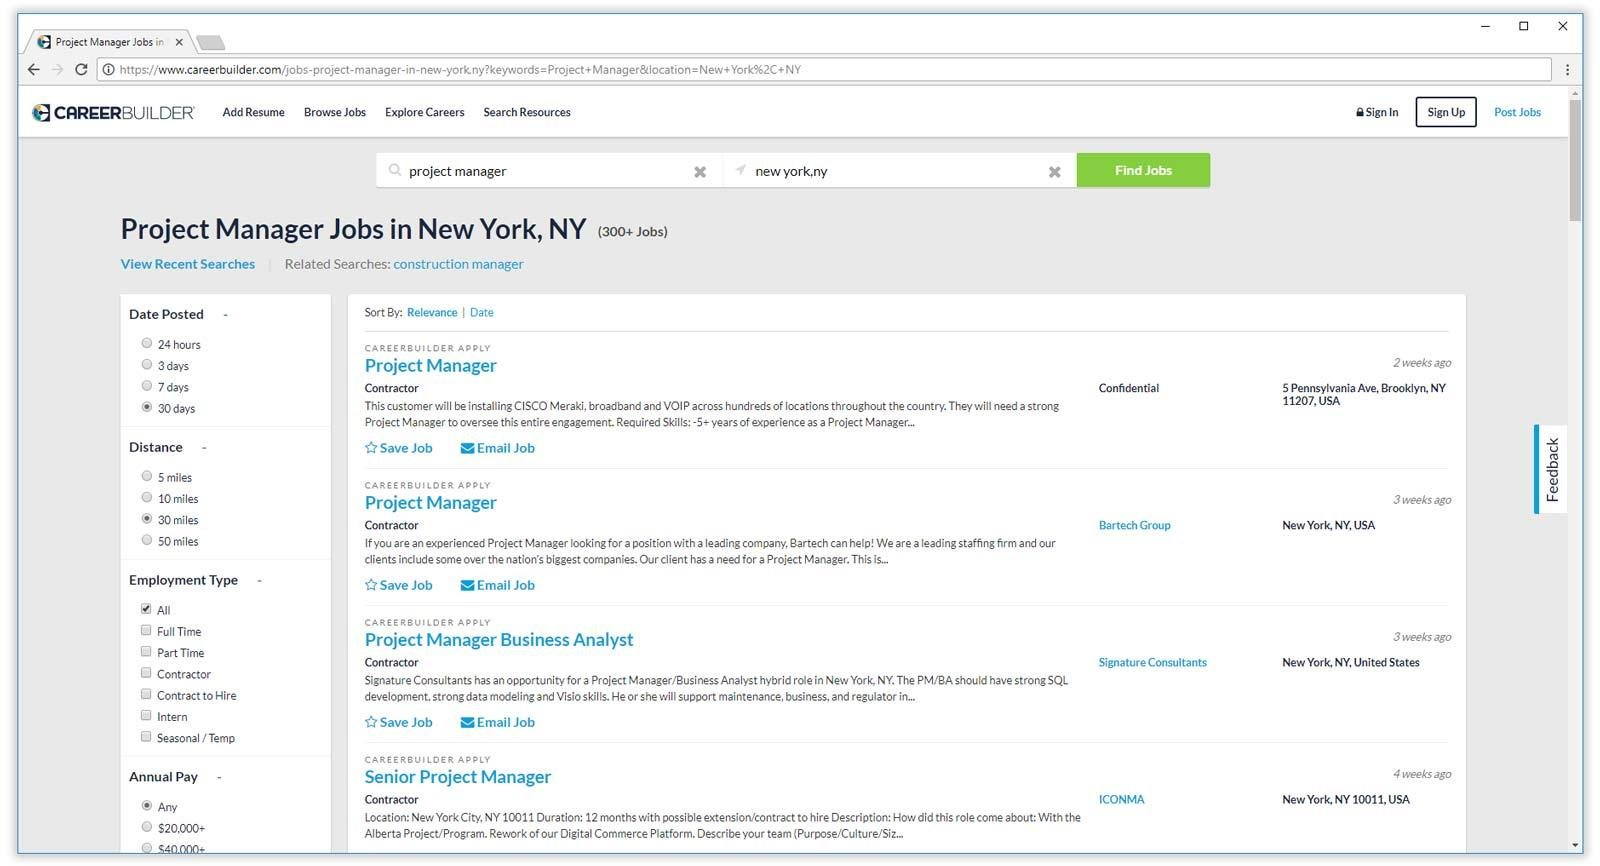 careerbuilder job search results